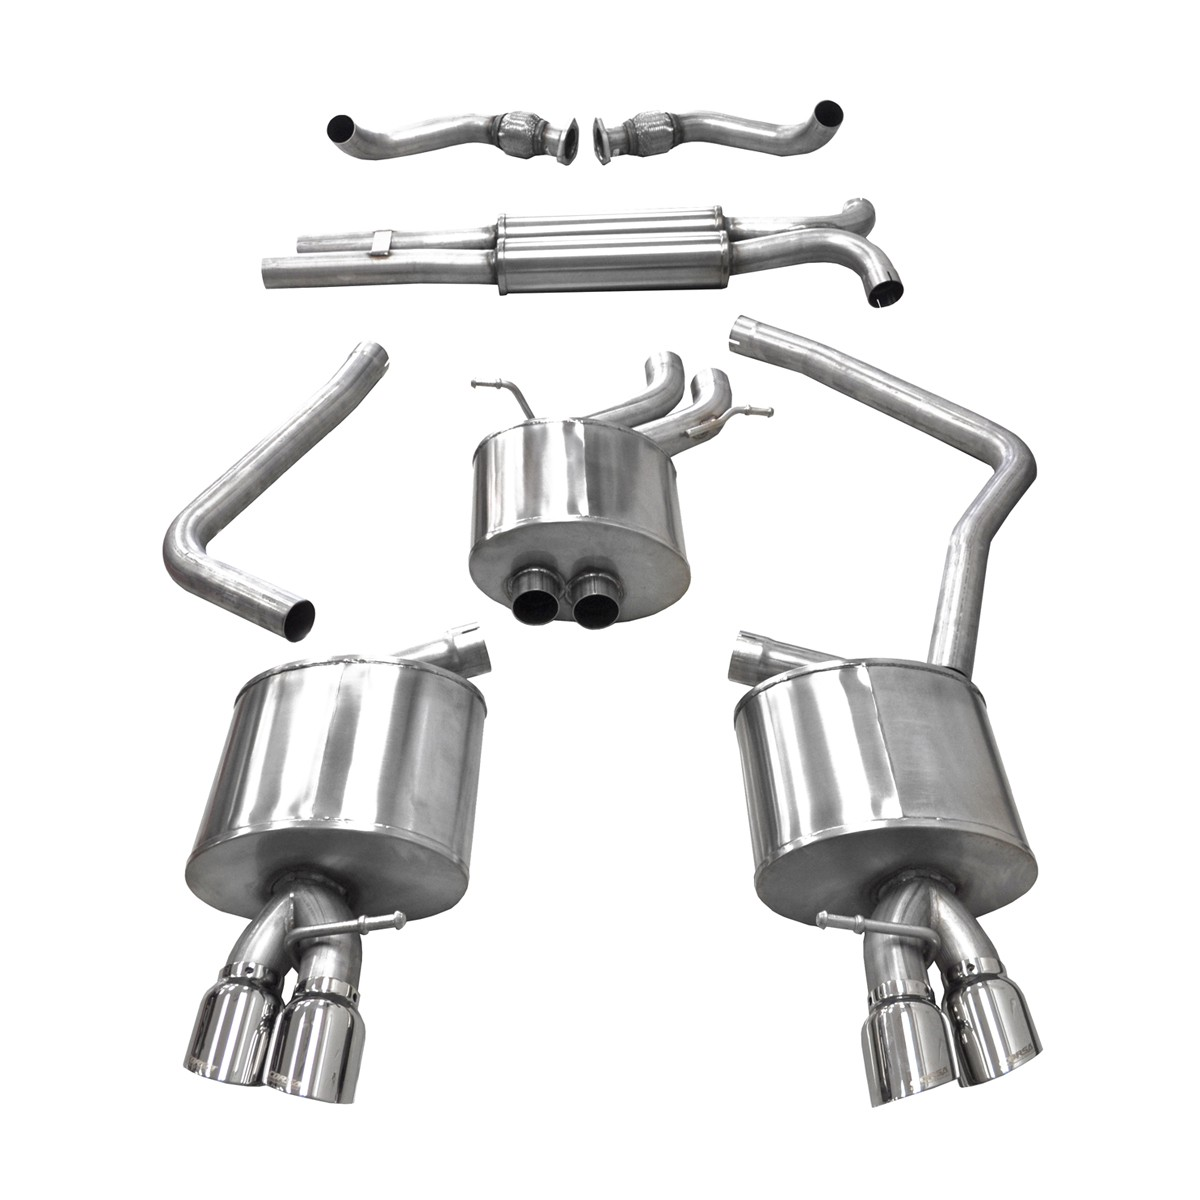 corsa performance b8 audi s4 s5 3 0t cat back exhaust system